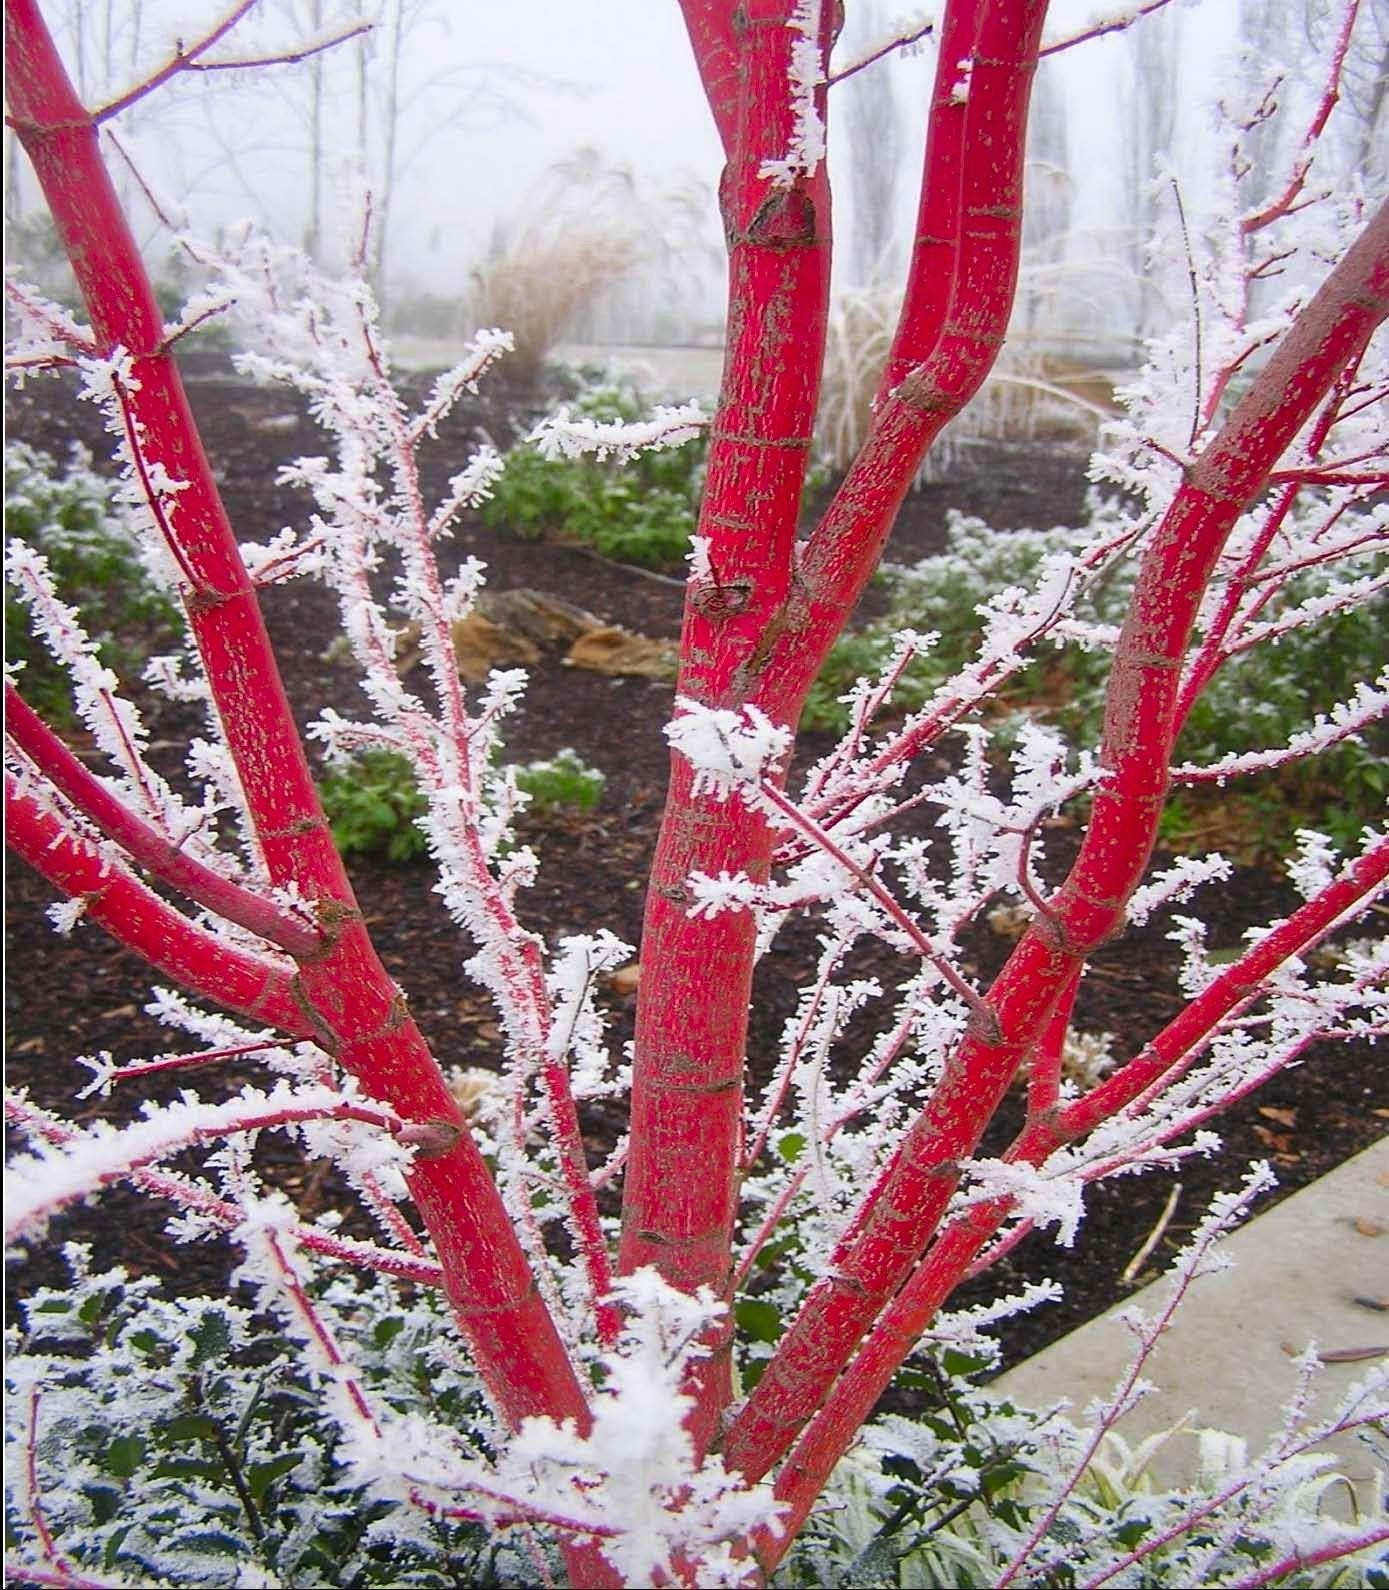 Coral Bark Japanese Maple Image courtesy of GardenGoodsDirect.com